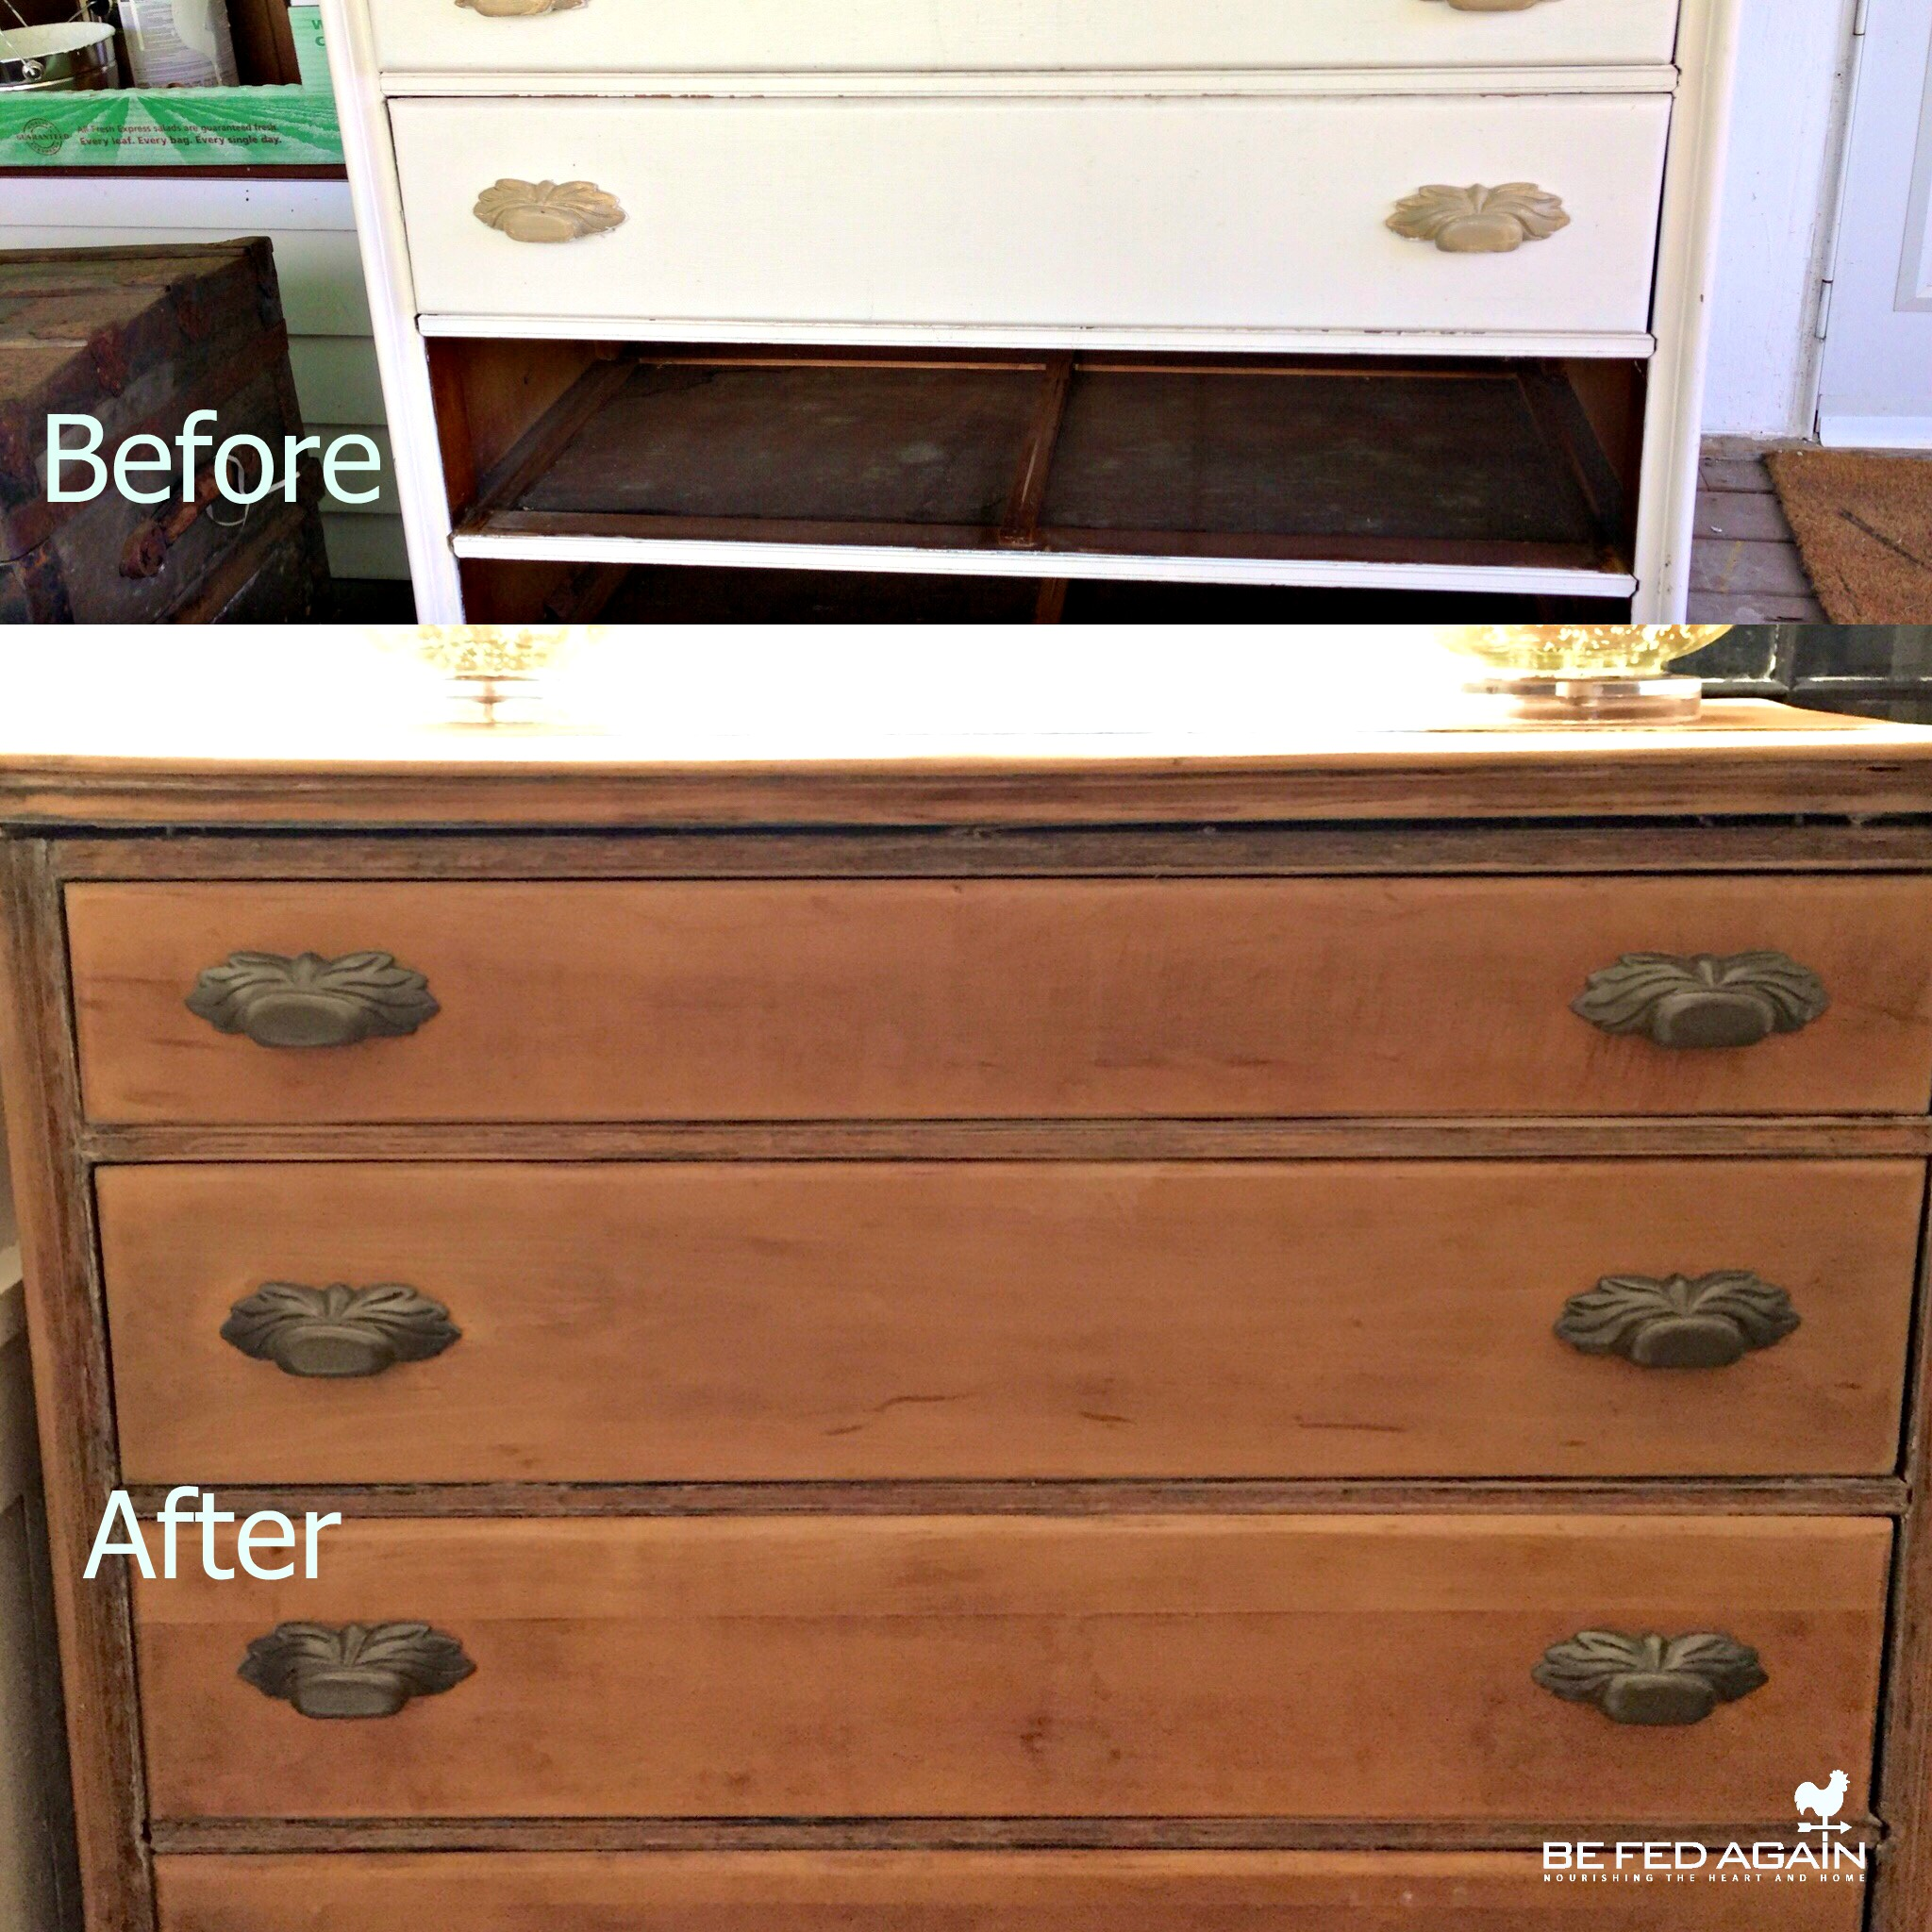 Wagner heat gun - dresser before and after